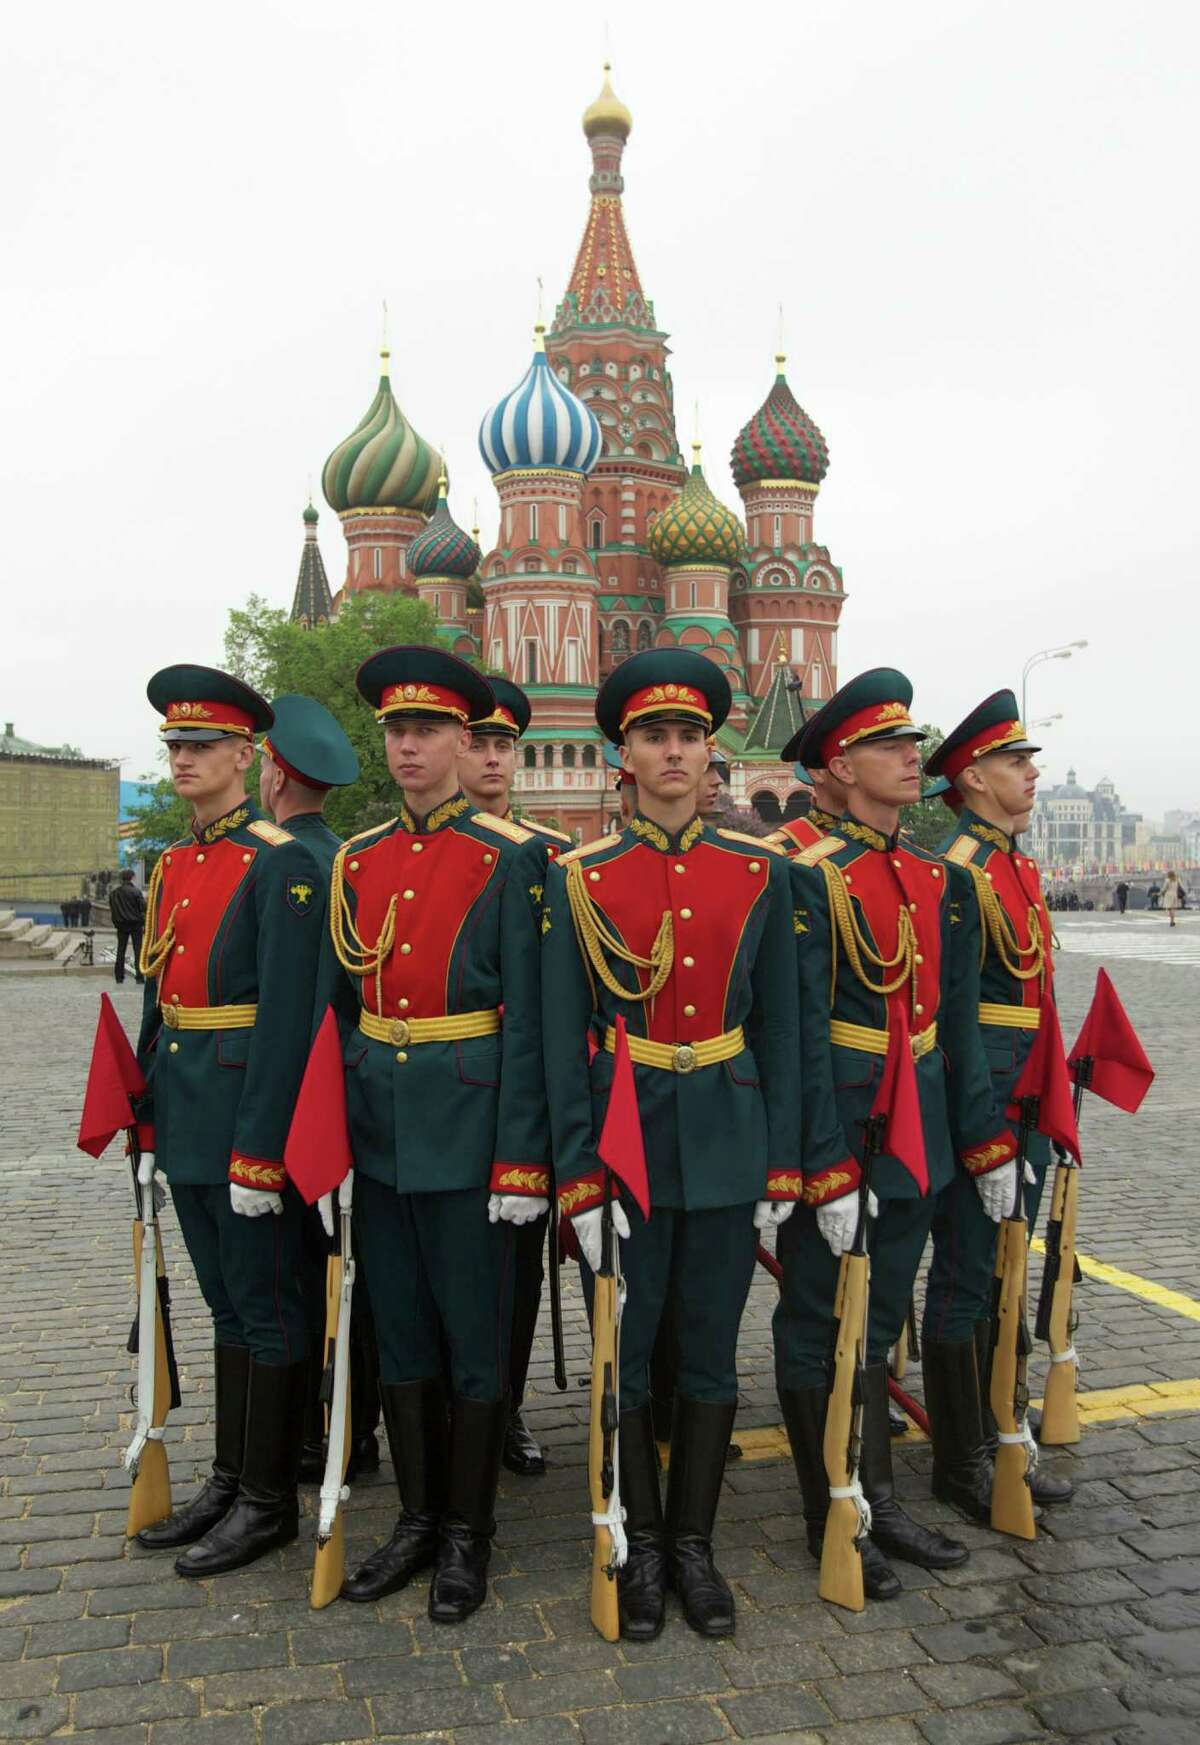 Russian honor guard soldiers stand after the Victory Day Parade, which commemorates the 1945 defeat of Nazi Germany, on the Red Square in Moscow, Russia, Wednesday, May 9, 2012, with St. Basil Cathedral at the background.